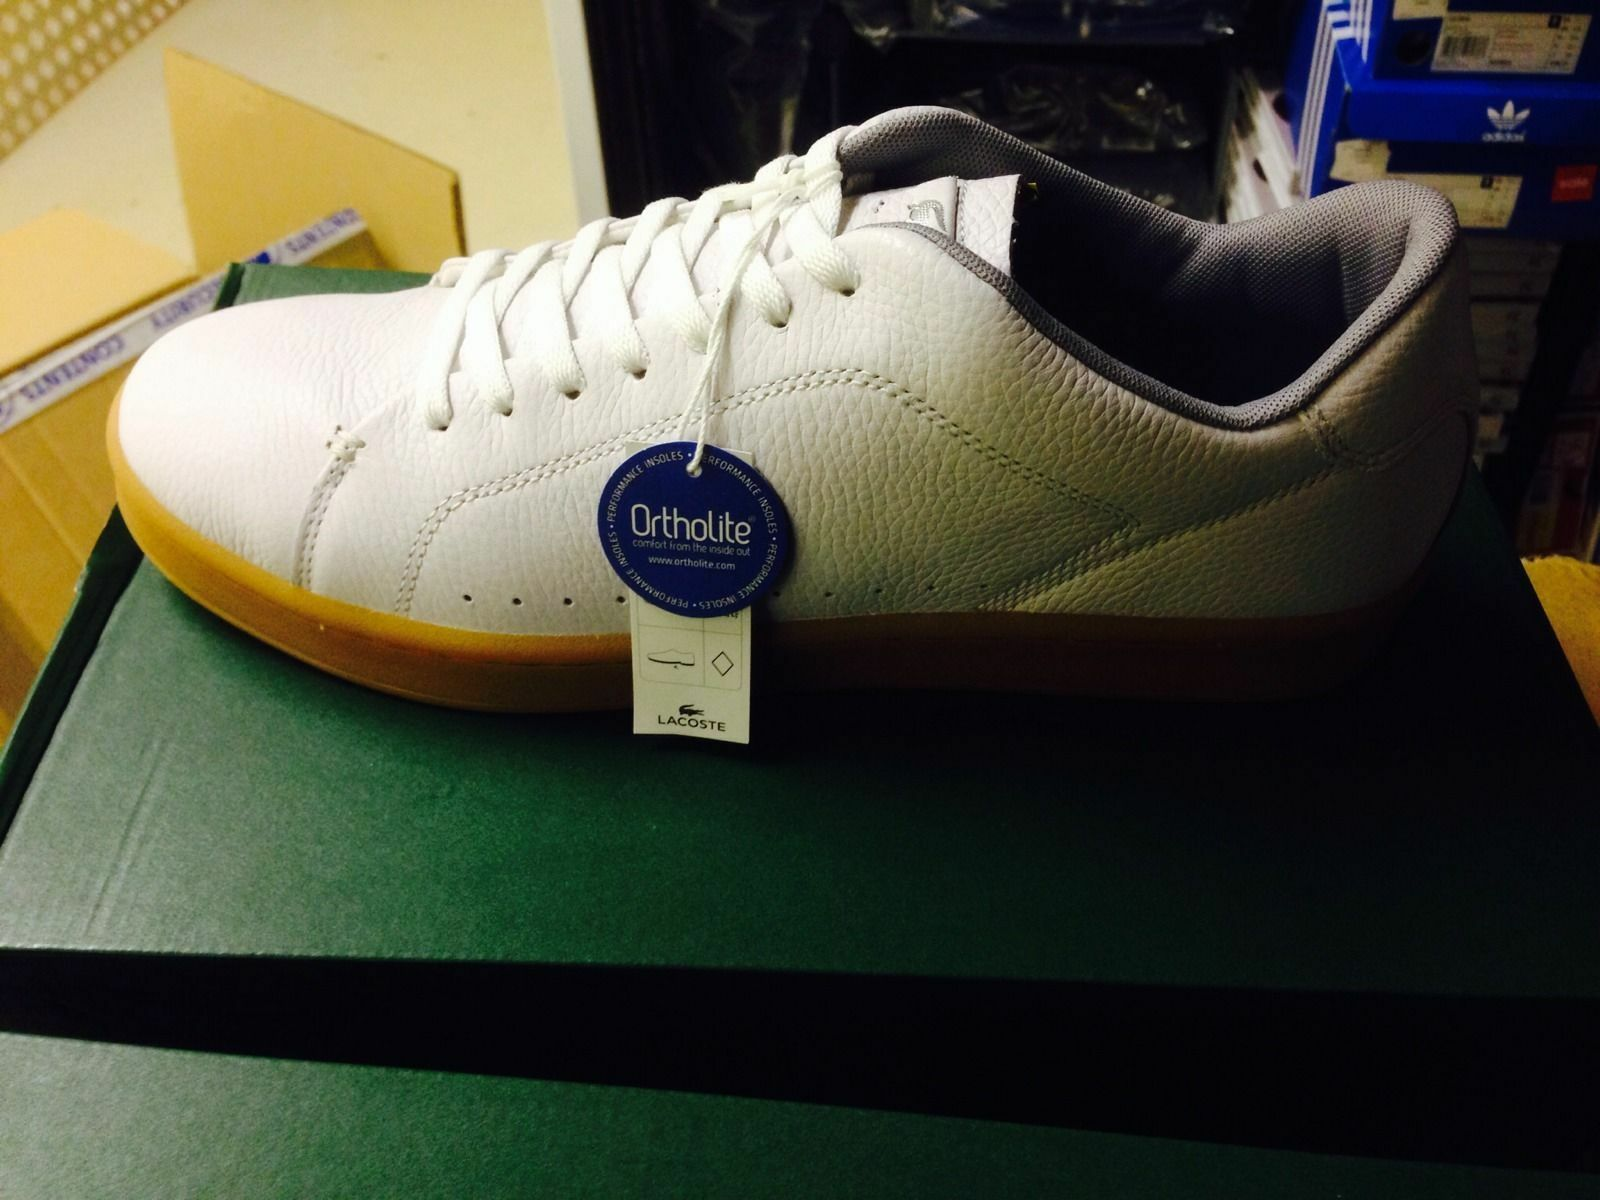 B NEW LACOSTE Carnaby White Leather Trainer shoes Ortholite